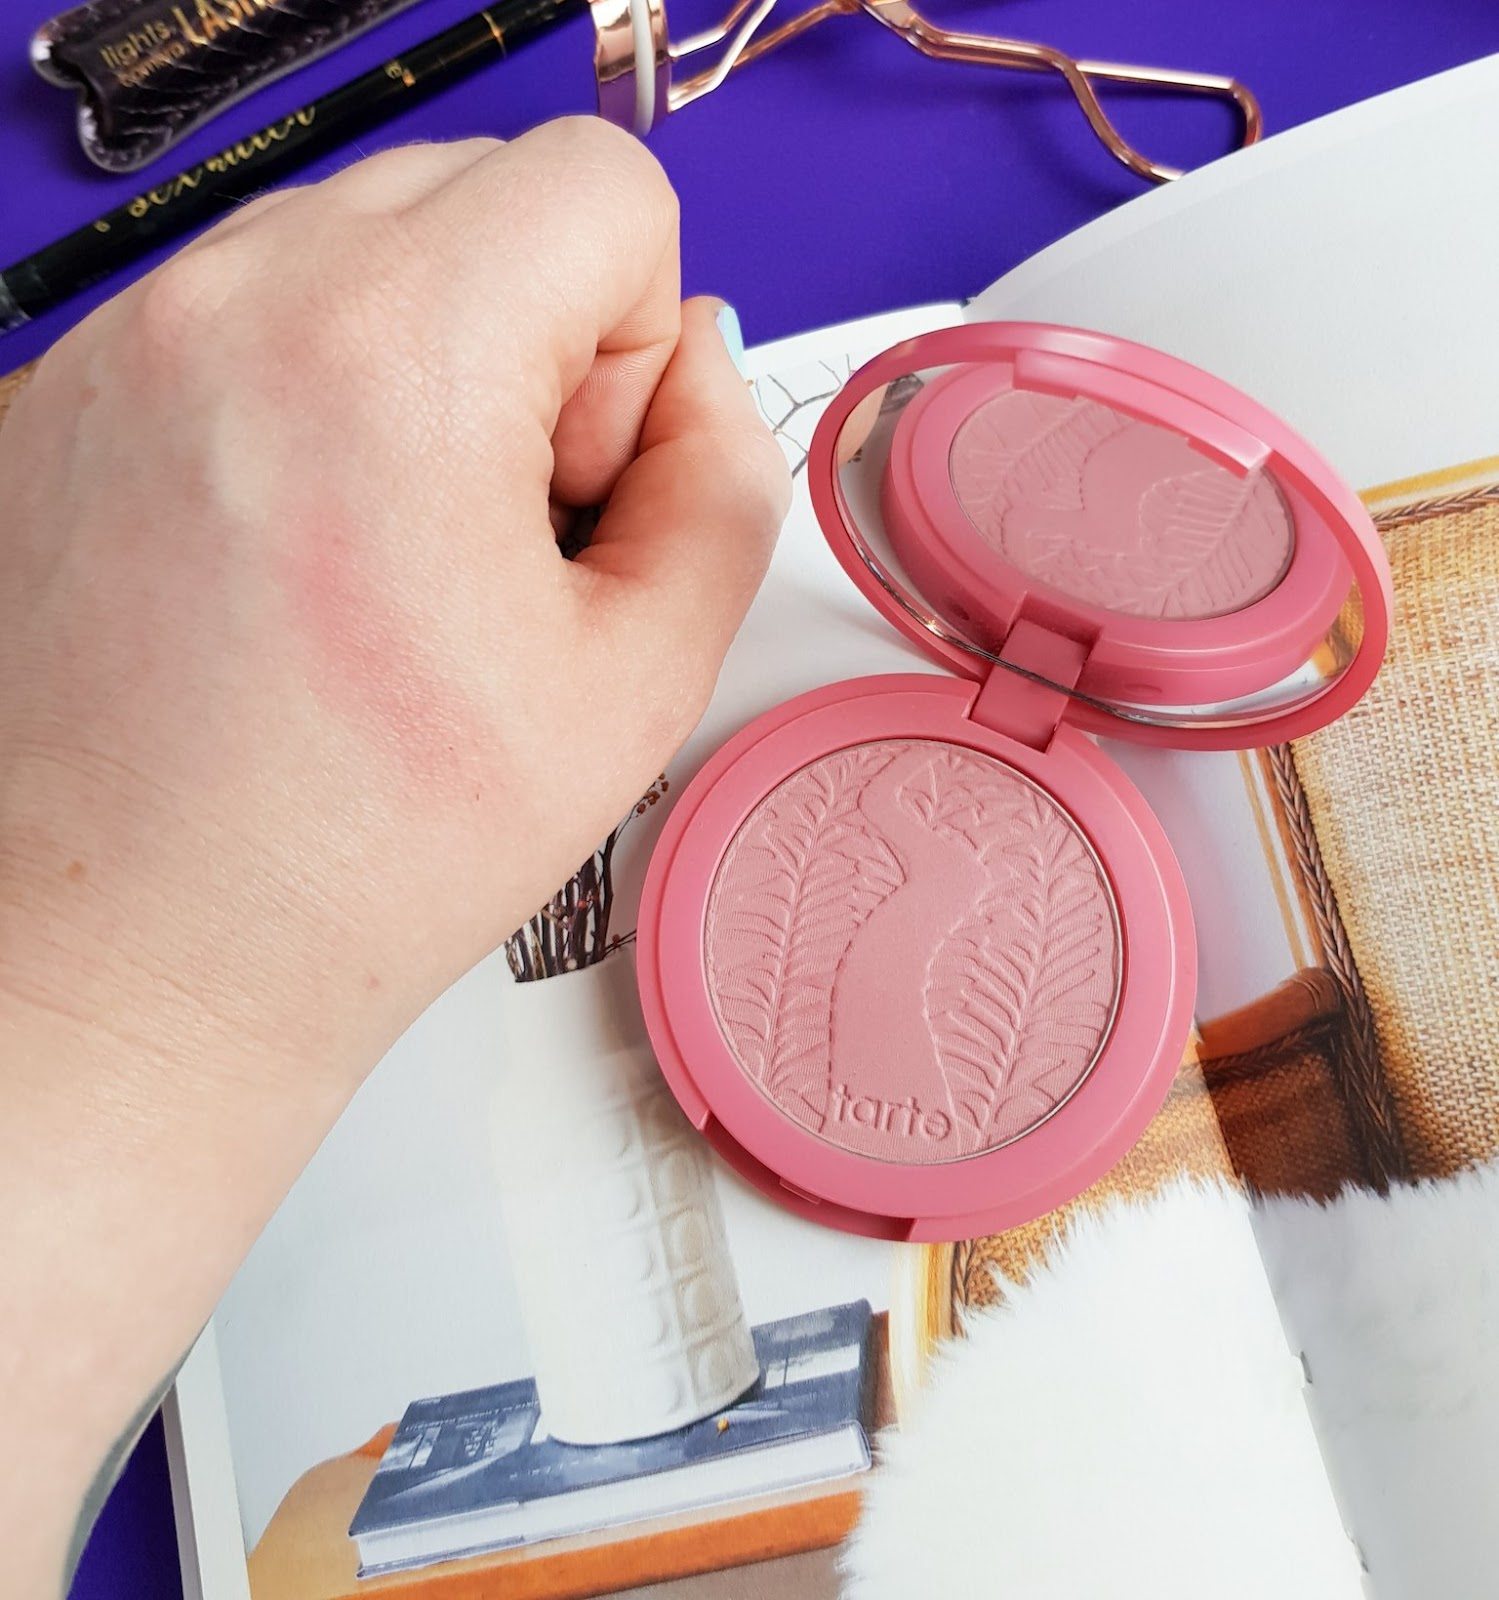 Tarte Make Up Blush Amazonian Clay 12-hour Blush in shade Blushing Bride (rosy pink)